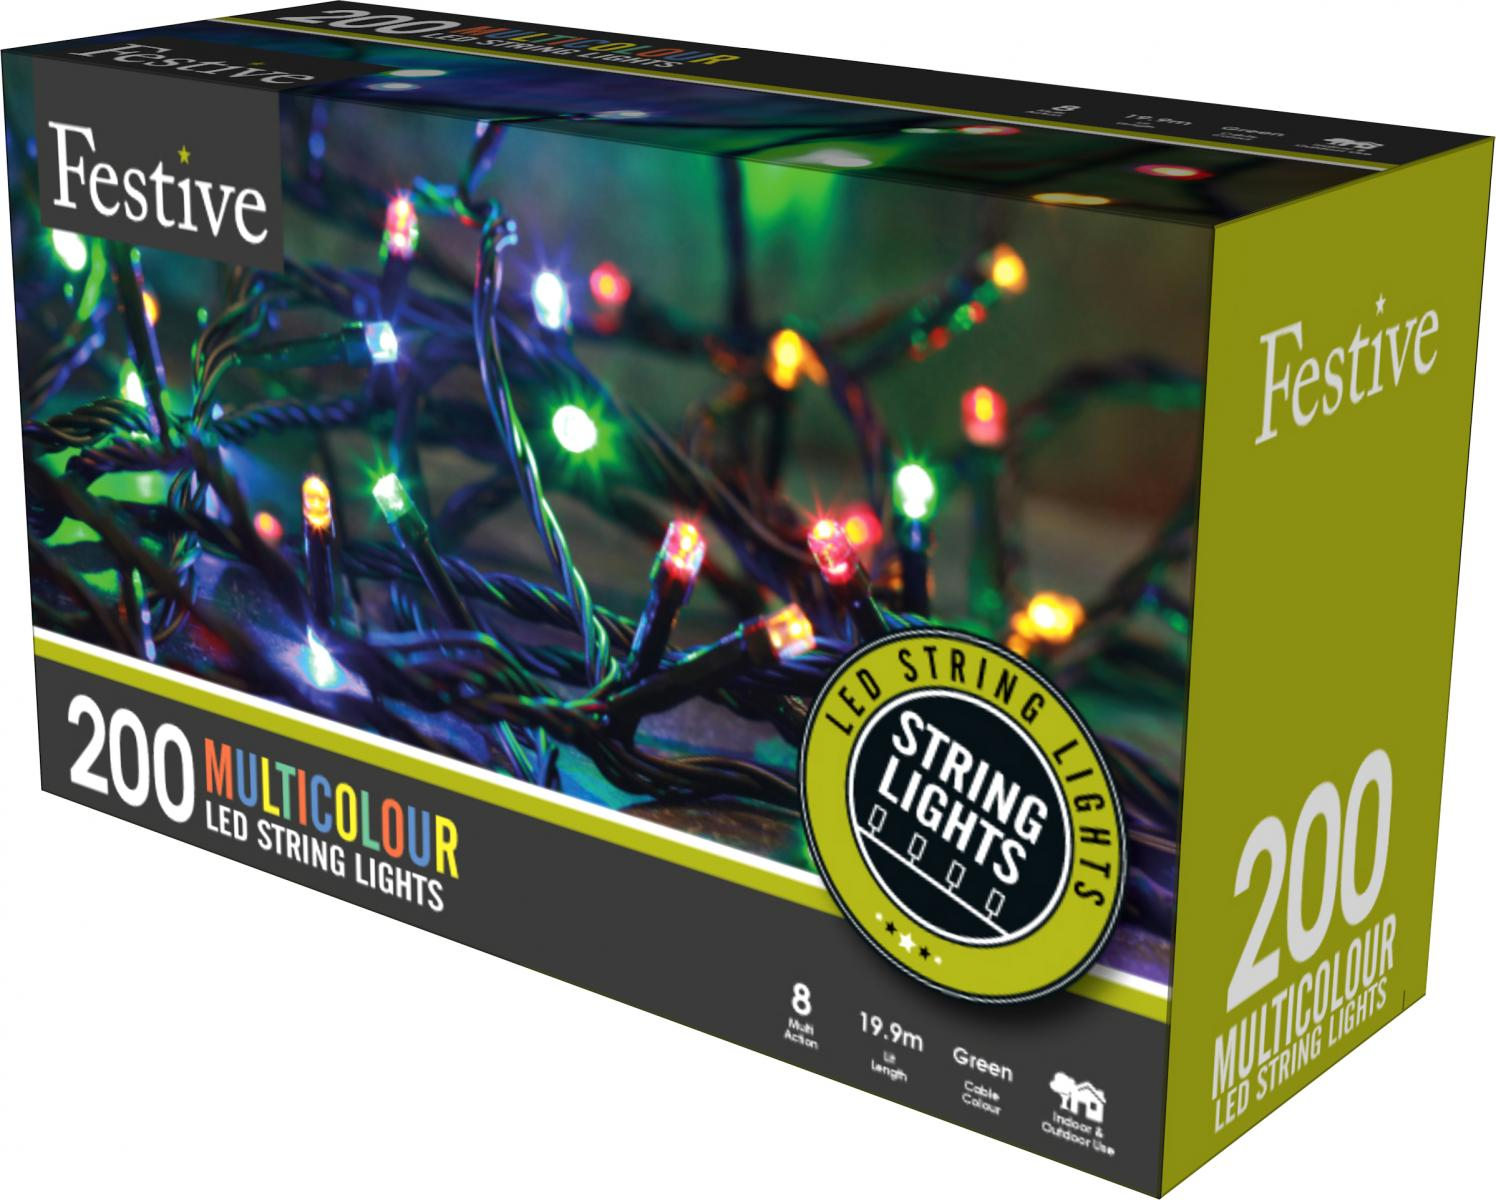 200lv LED lights with 8 multifunction controller with timer - Multicolour – Now Only £14.00